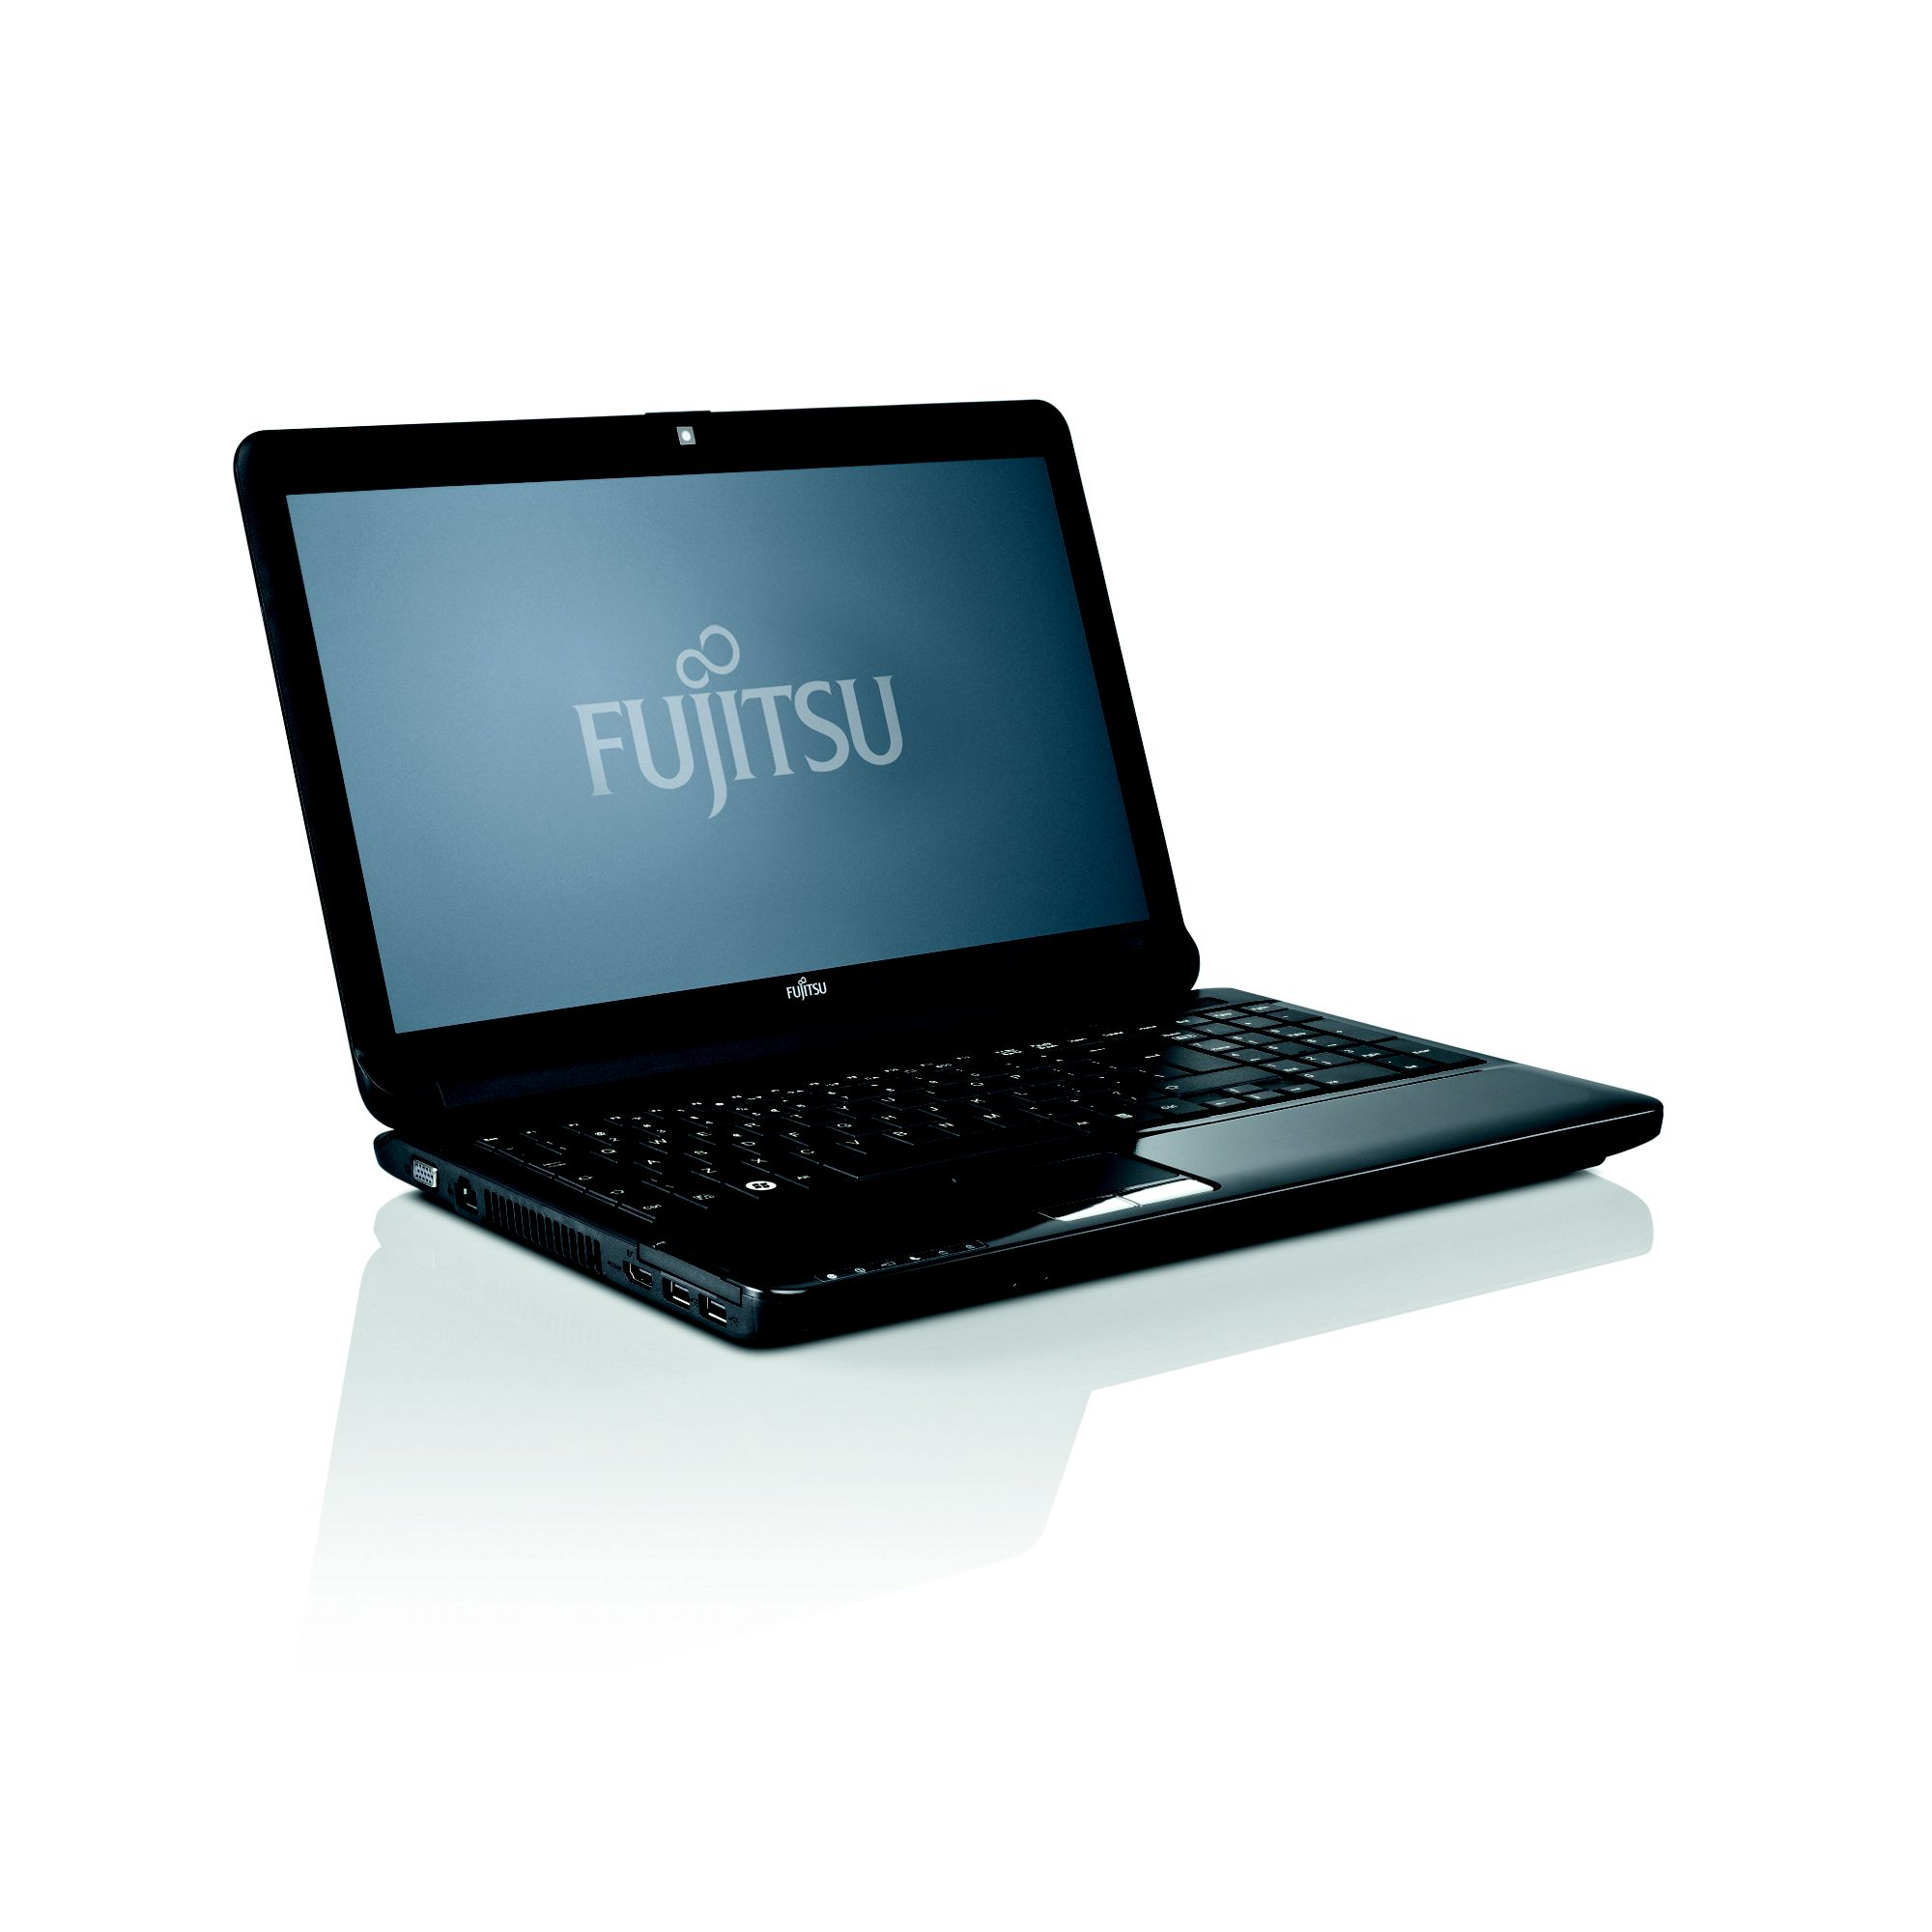 Fujitsu Lifebook 15.6 inch Notebook PC AH530 Core i3 (380M) 2.53GHz 4GB 500GB DVD+RW Windows 7 Home Premium 64-bit at Tesco Direct